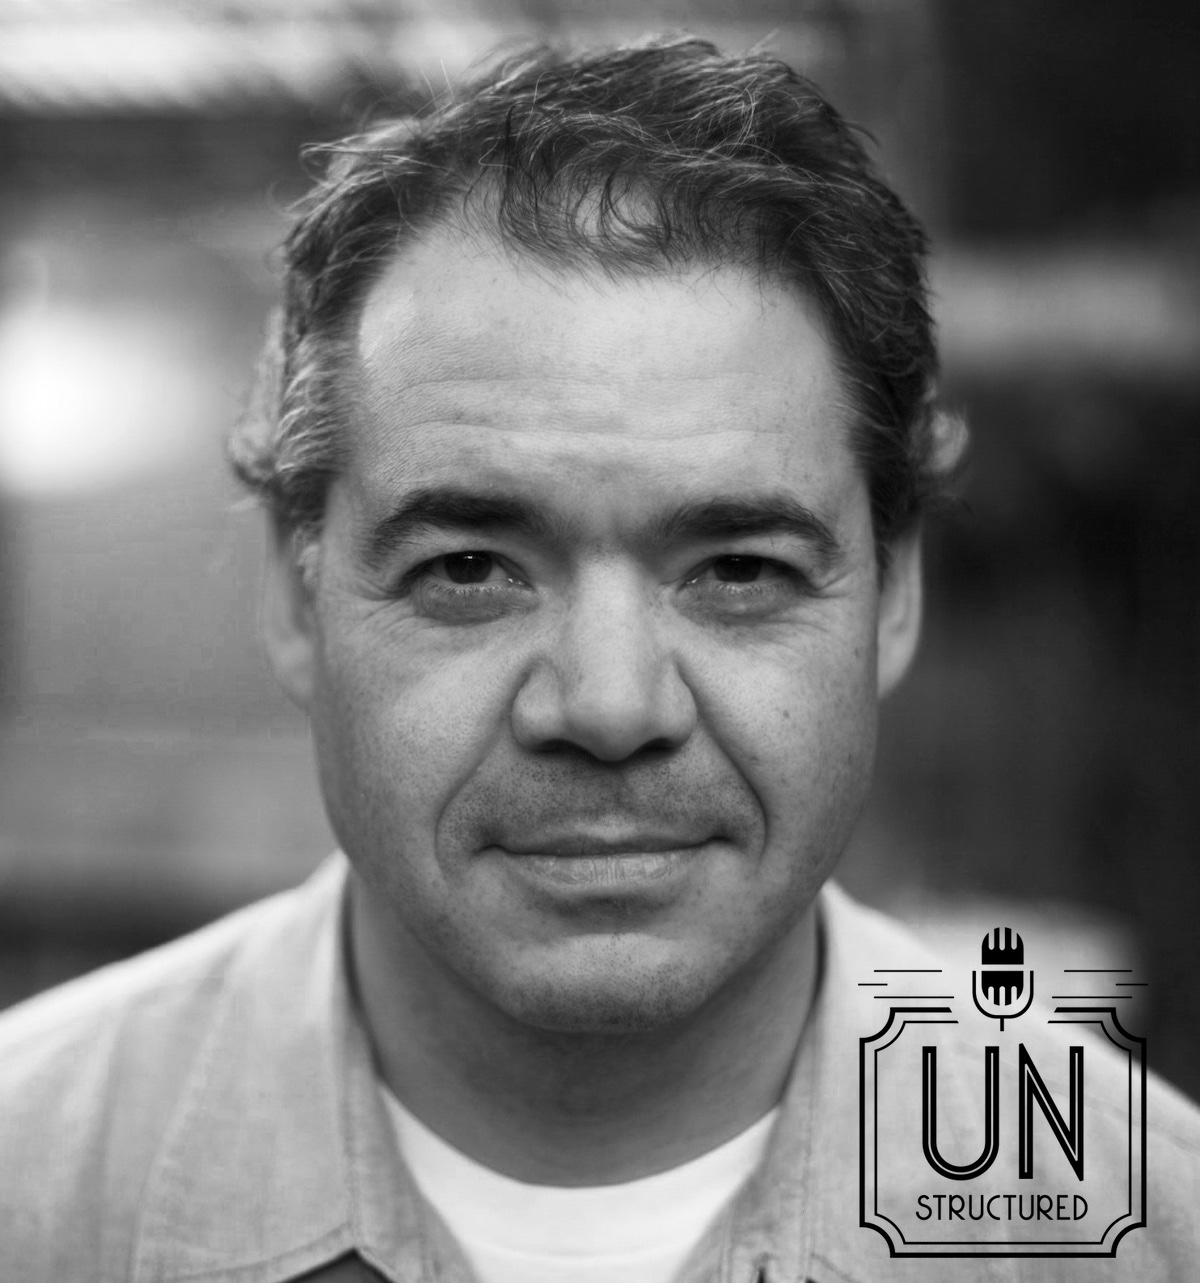 089 - Alex Lindsay UnstructuredPod Unstructured interviews - Dynamic Informal Conversations with unique wide-ranging and well-researched interviews hosted by Eric Hunley